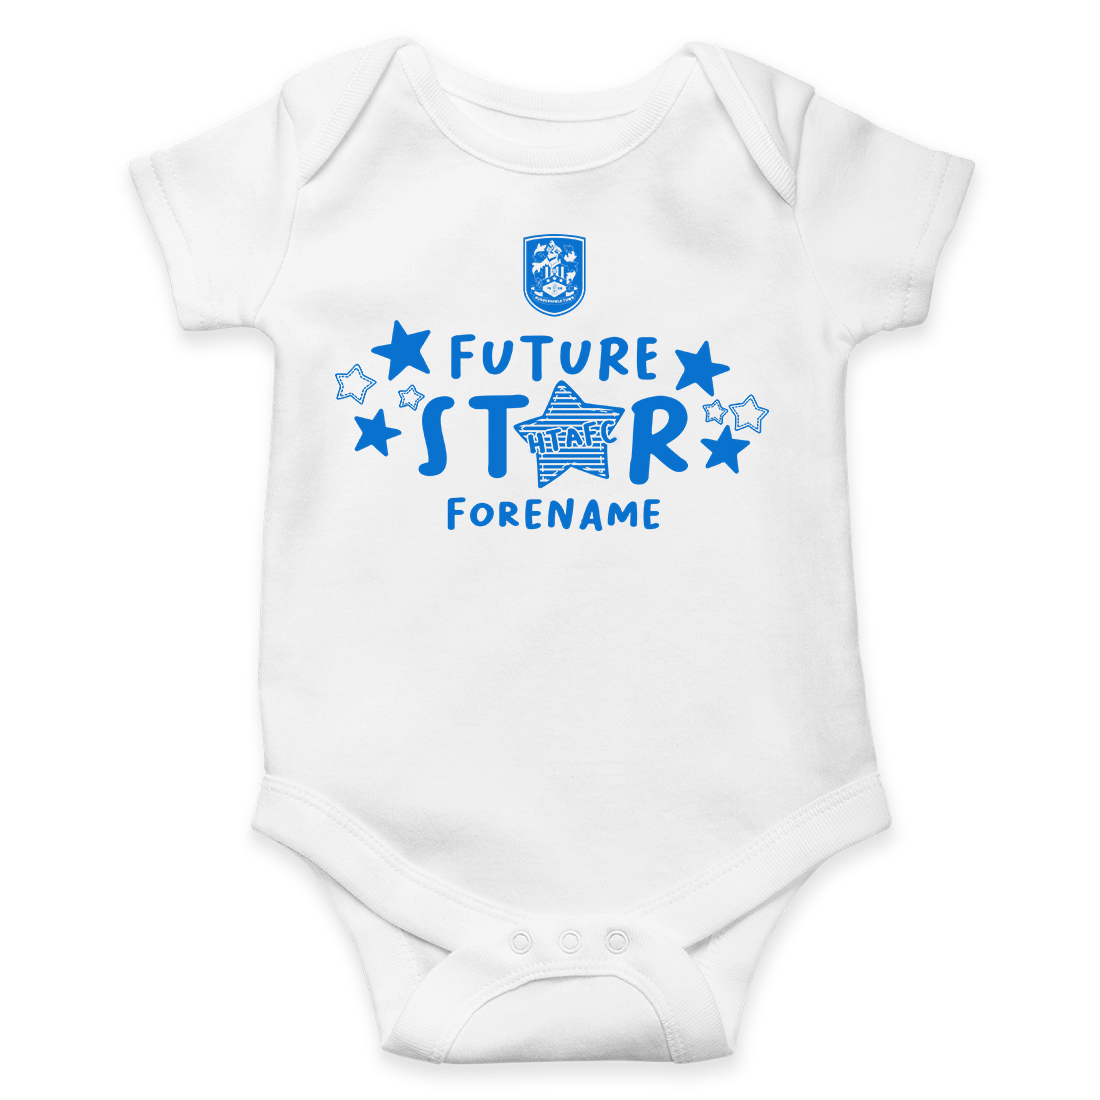 Huddersfield Town AFC Future Star Baby Bodysuit